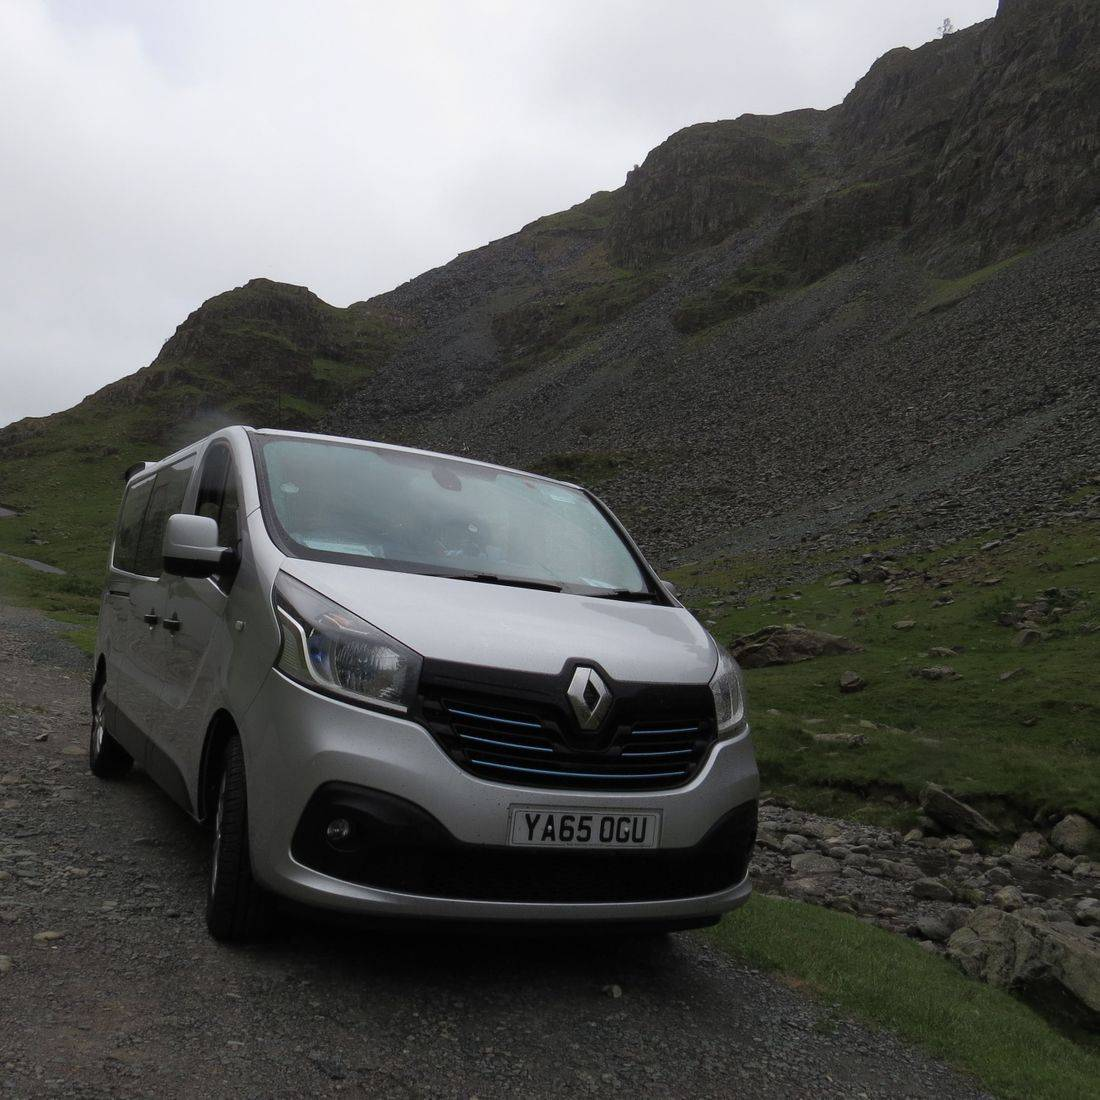 renault traffic minibus lake district